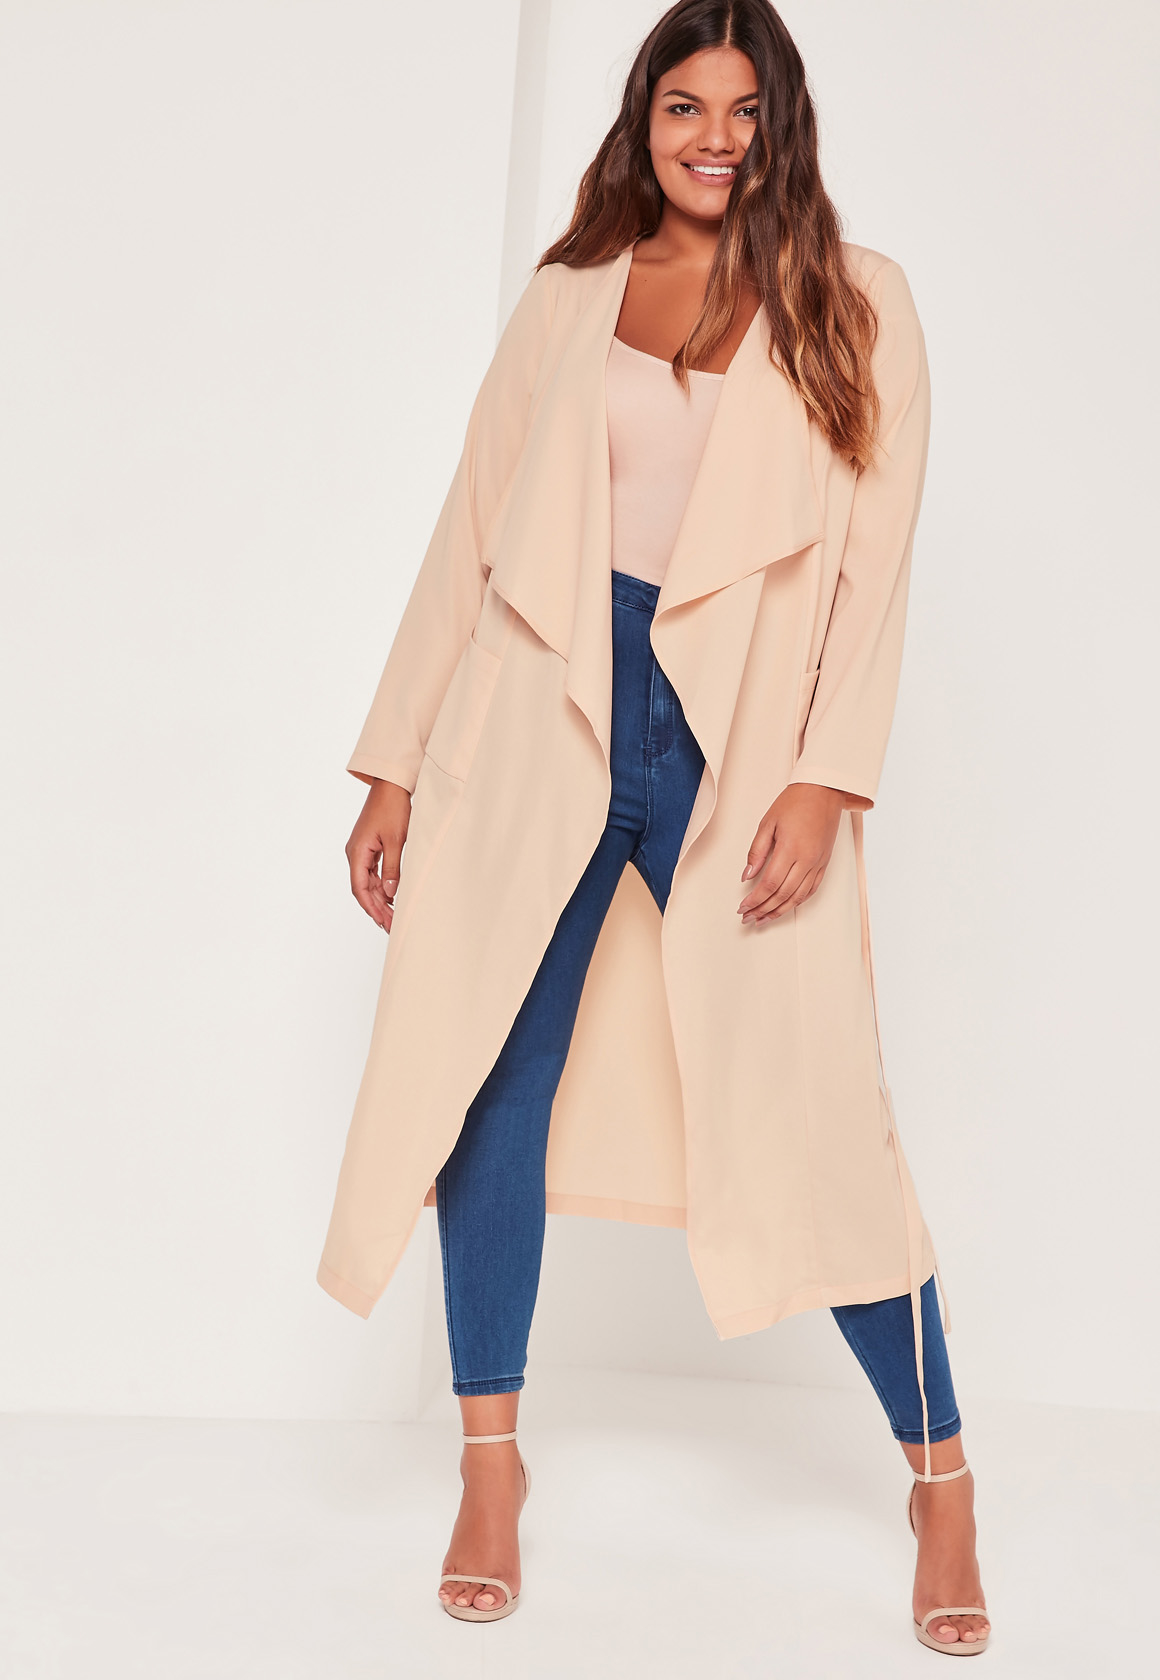 6f5aea5a0659d Lyst - Missguided Plus Size Waterfall Duster Jacket Nude in Natural